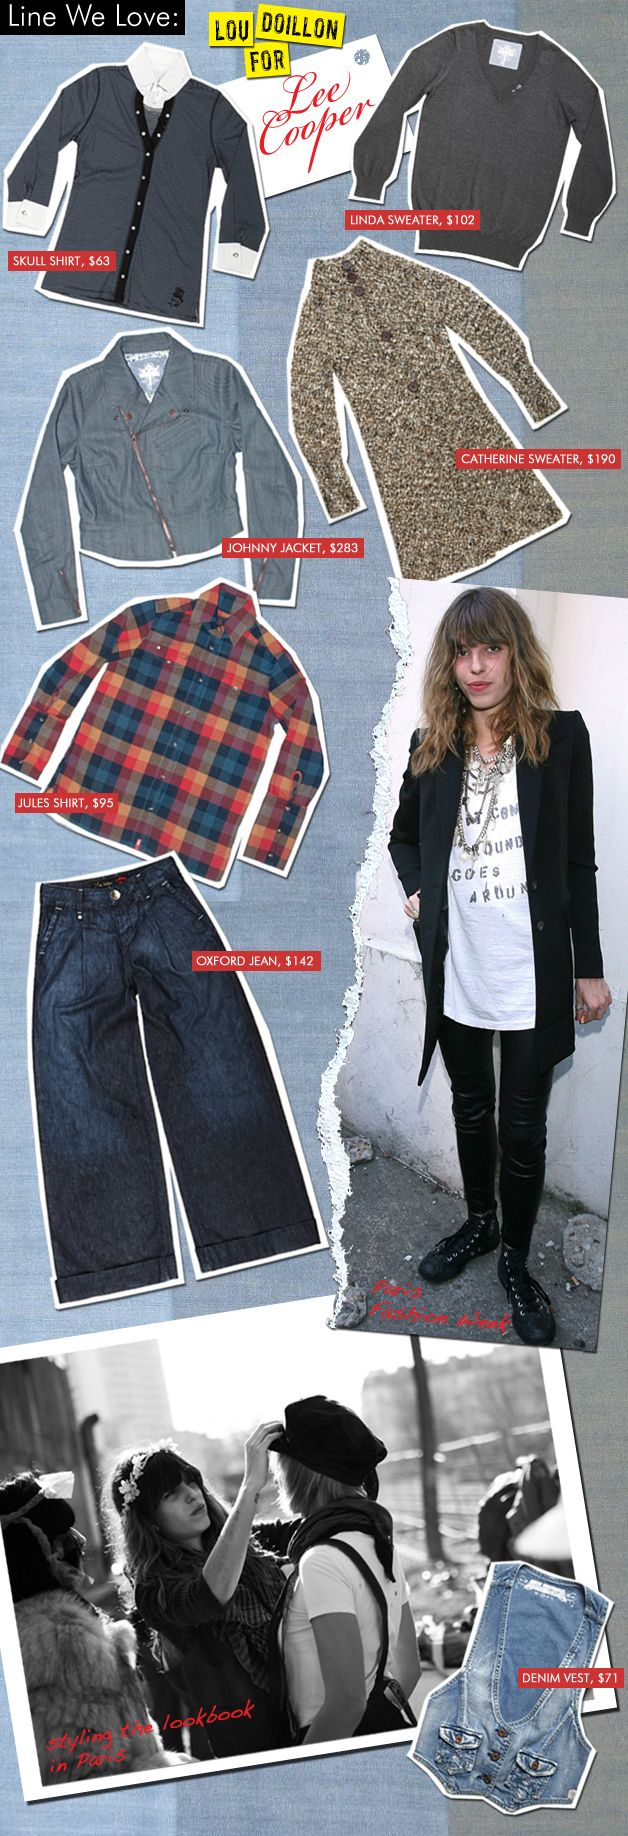 Lou Doillon for Lee Cooper